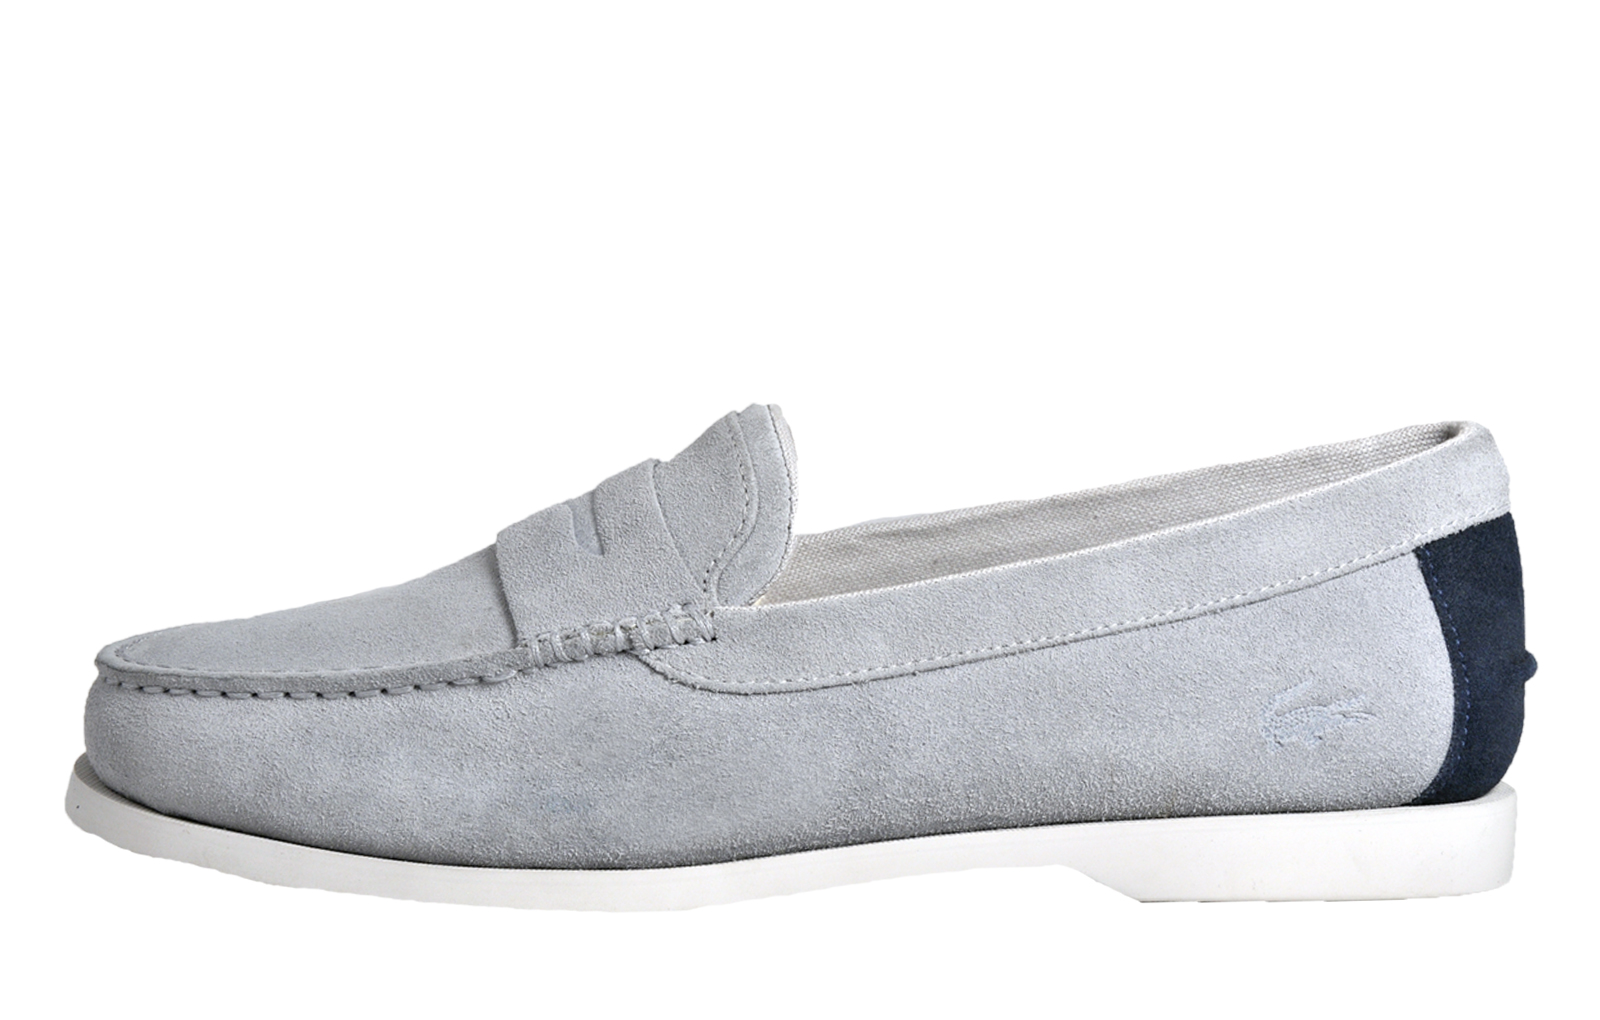 33ecb47a7 Lacoste Navire Penny 216 Mens Suede Classic Loafer Designer slip on Shoes  Light Grey